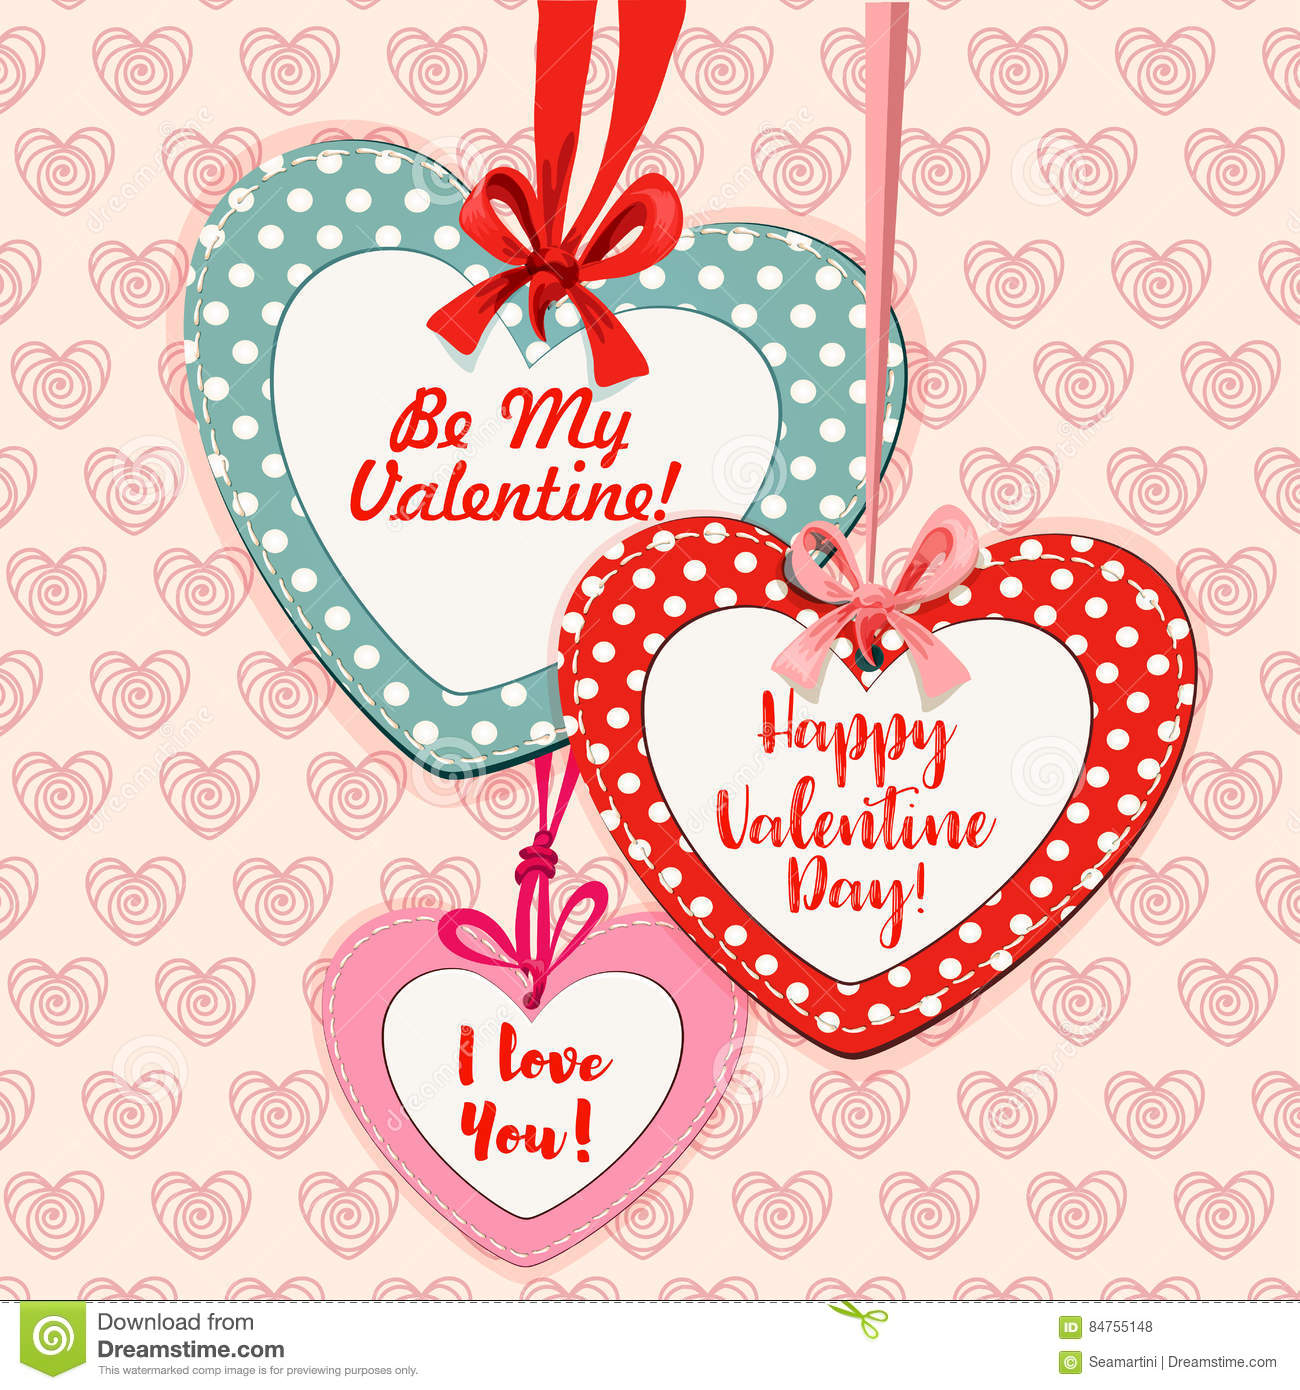 valentine day heart shaped greeting card design stock vector